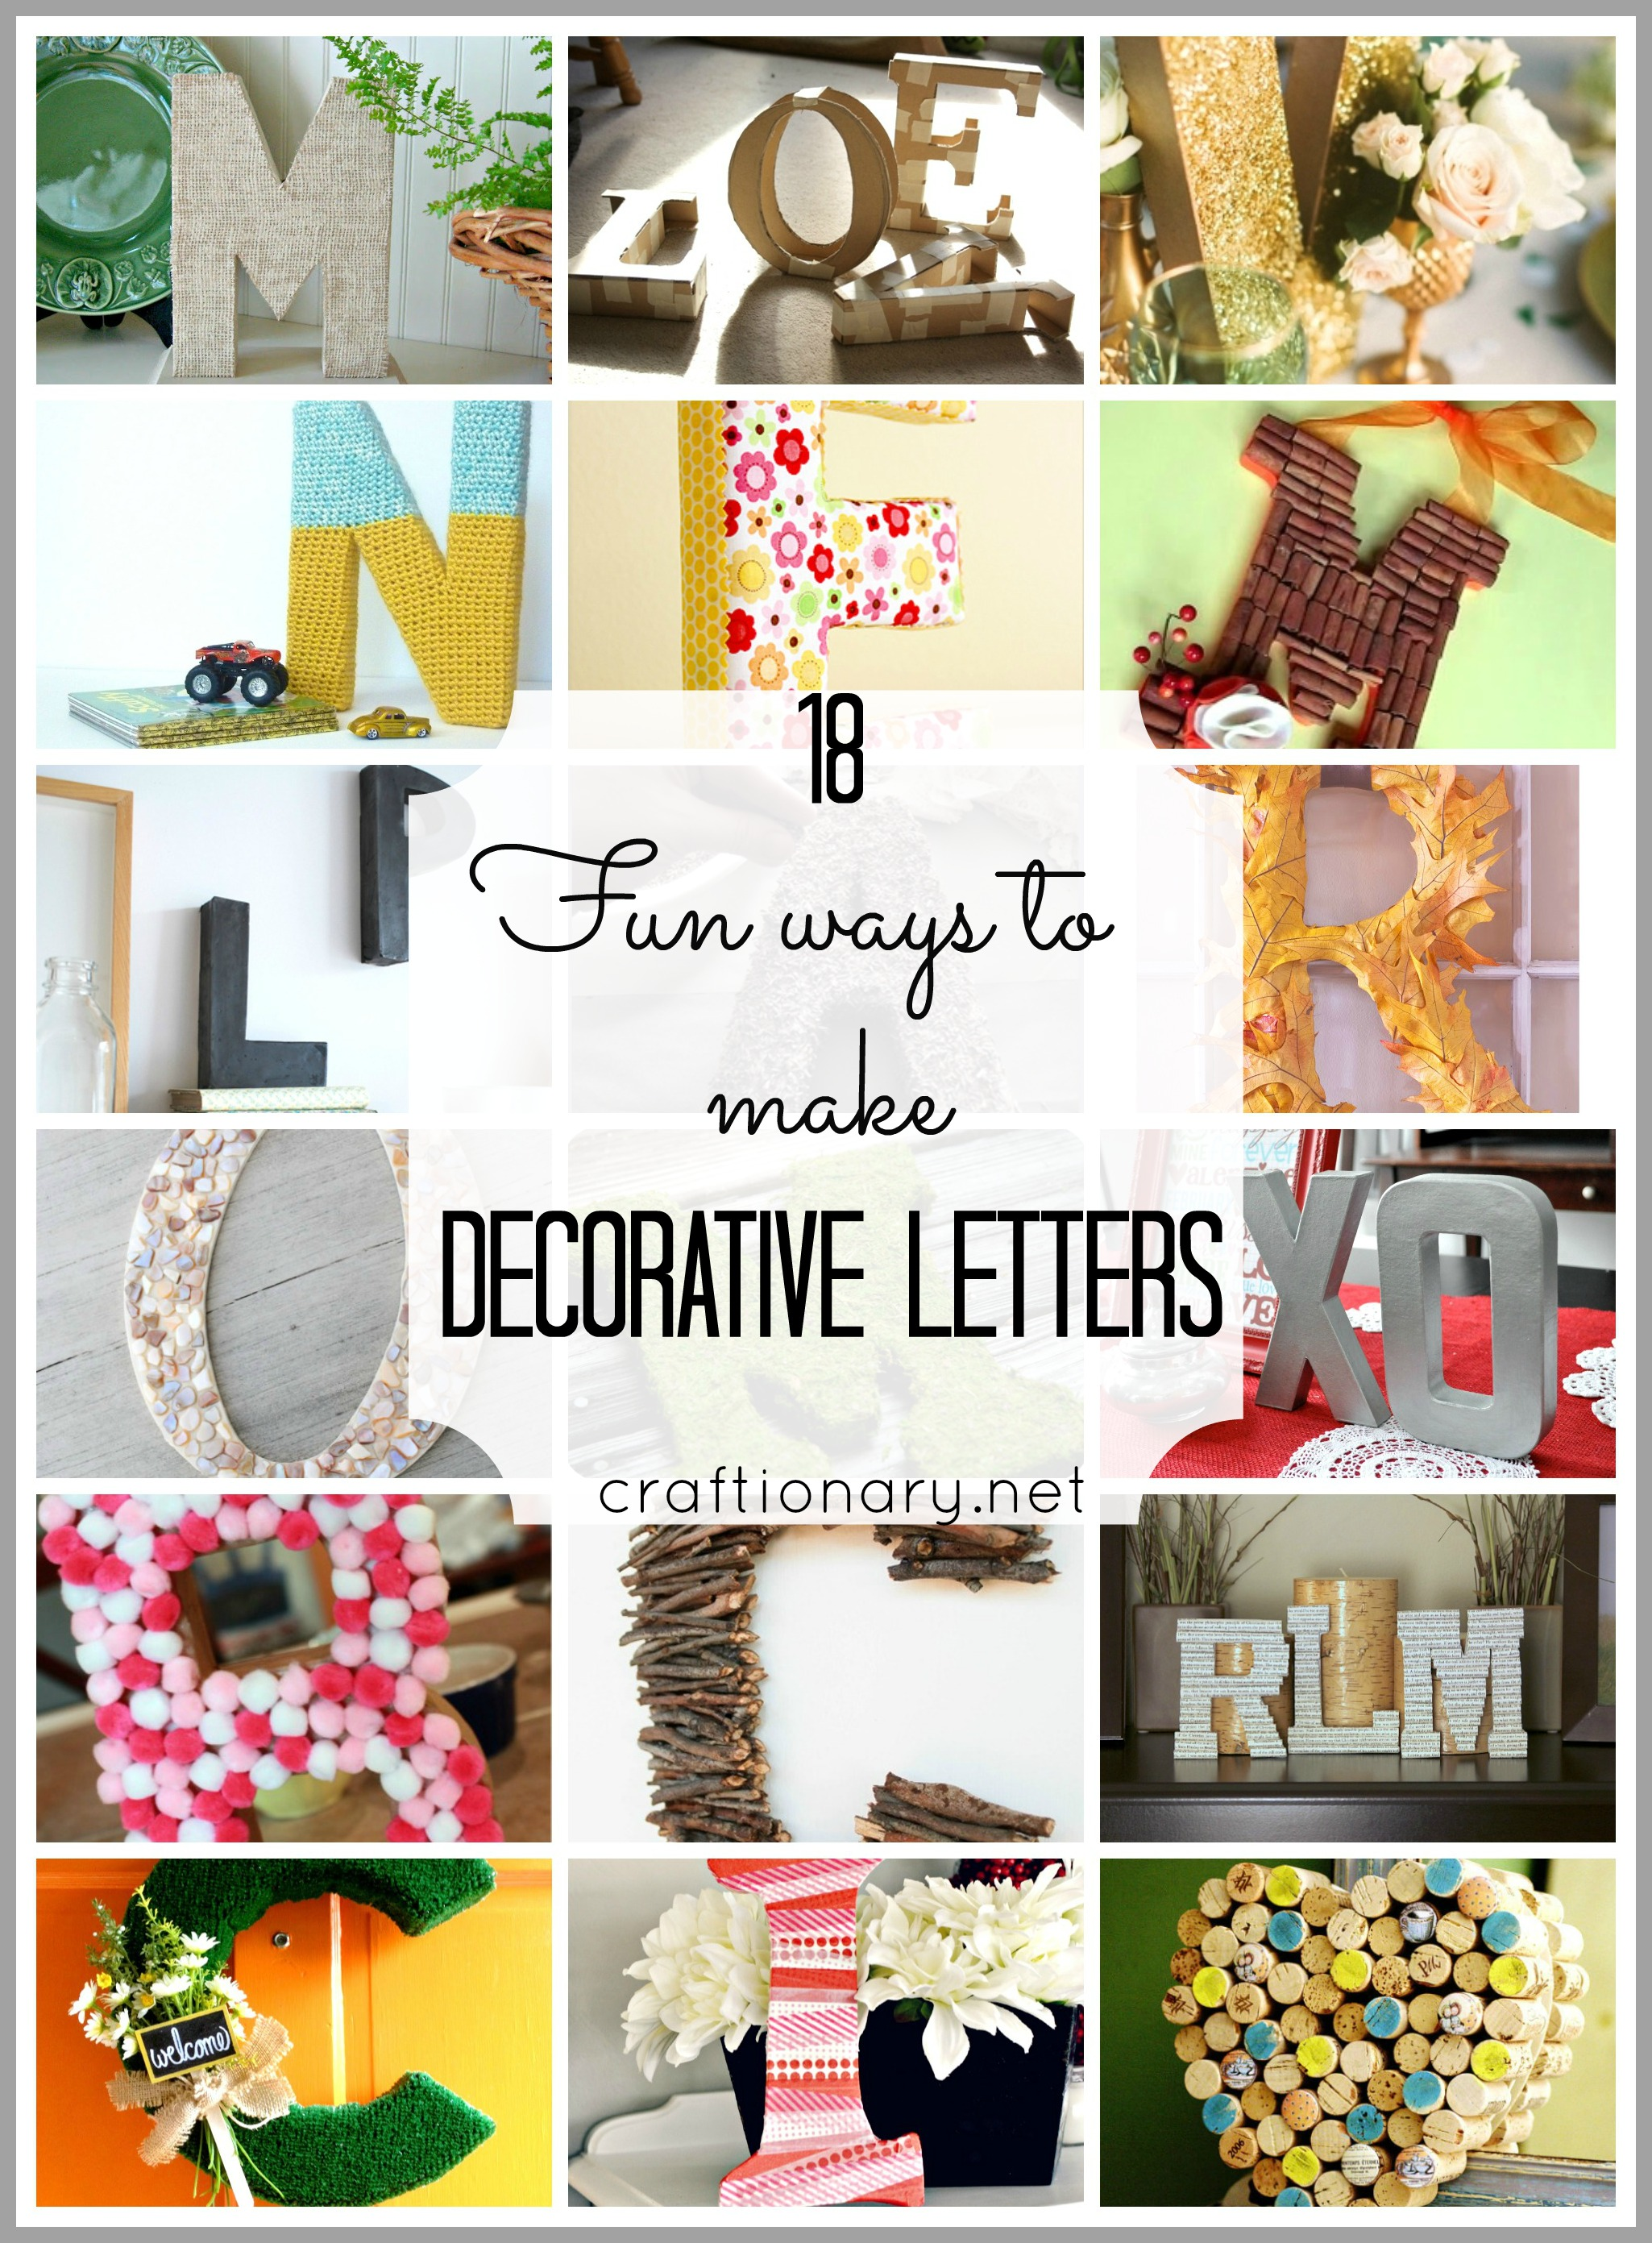 creative letters craftionary 21235 | make decorative letters